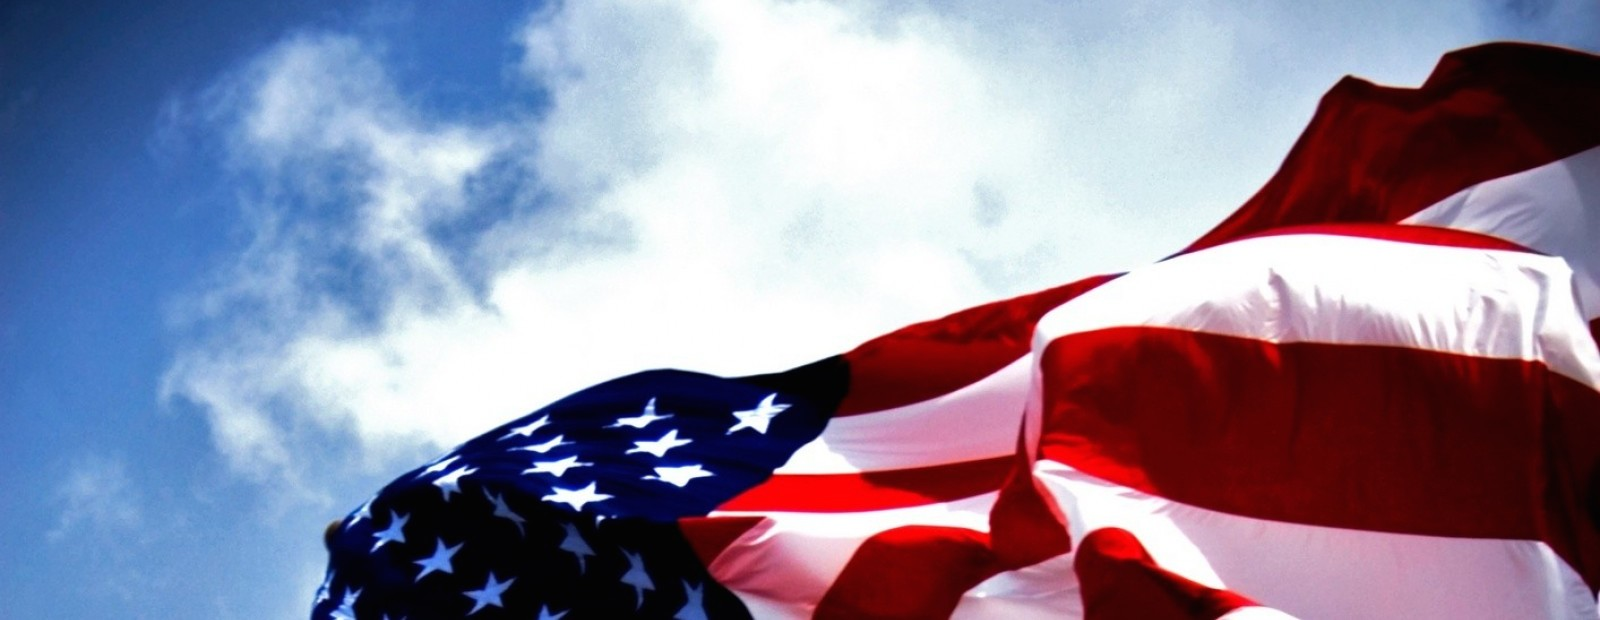 American flag wallpaper and the sky 11g wisconsins private american flag wallpaper and the sky 11g voltagebd Gallery